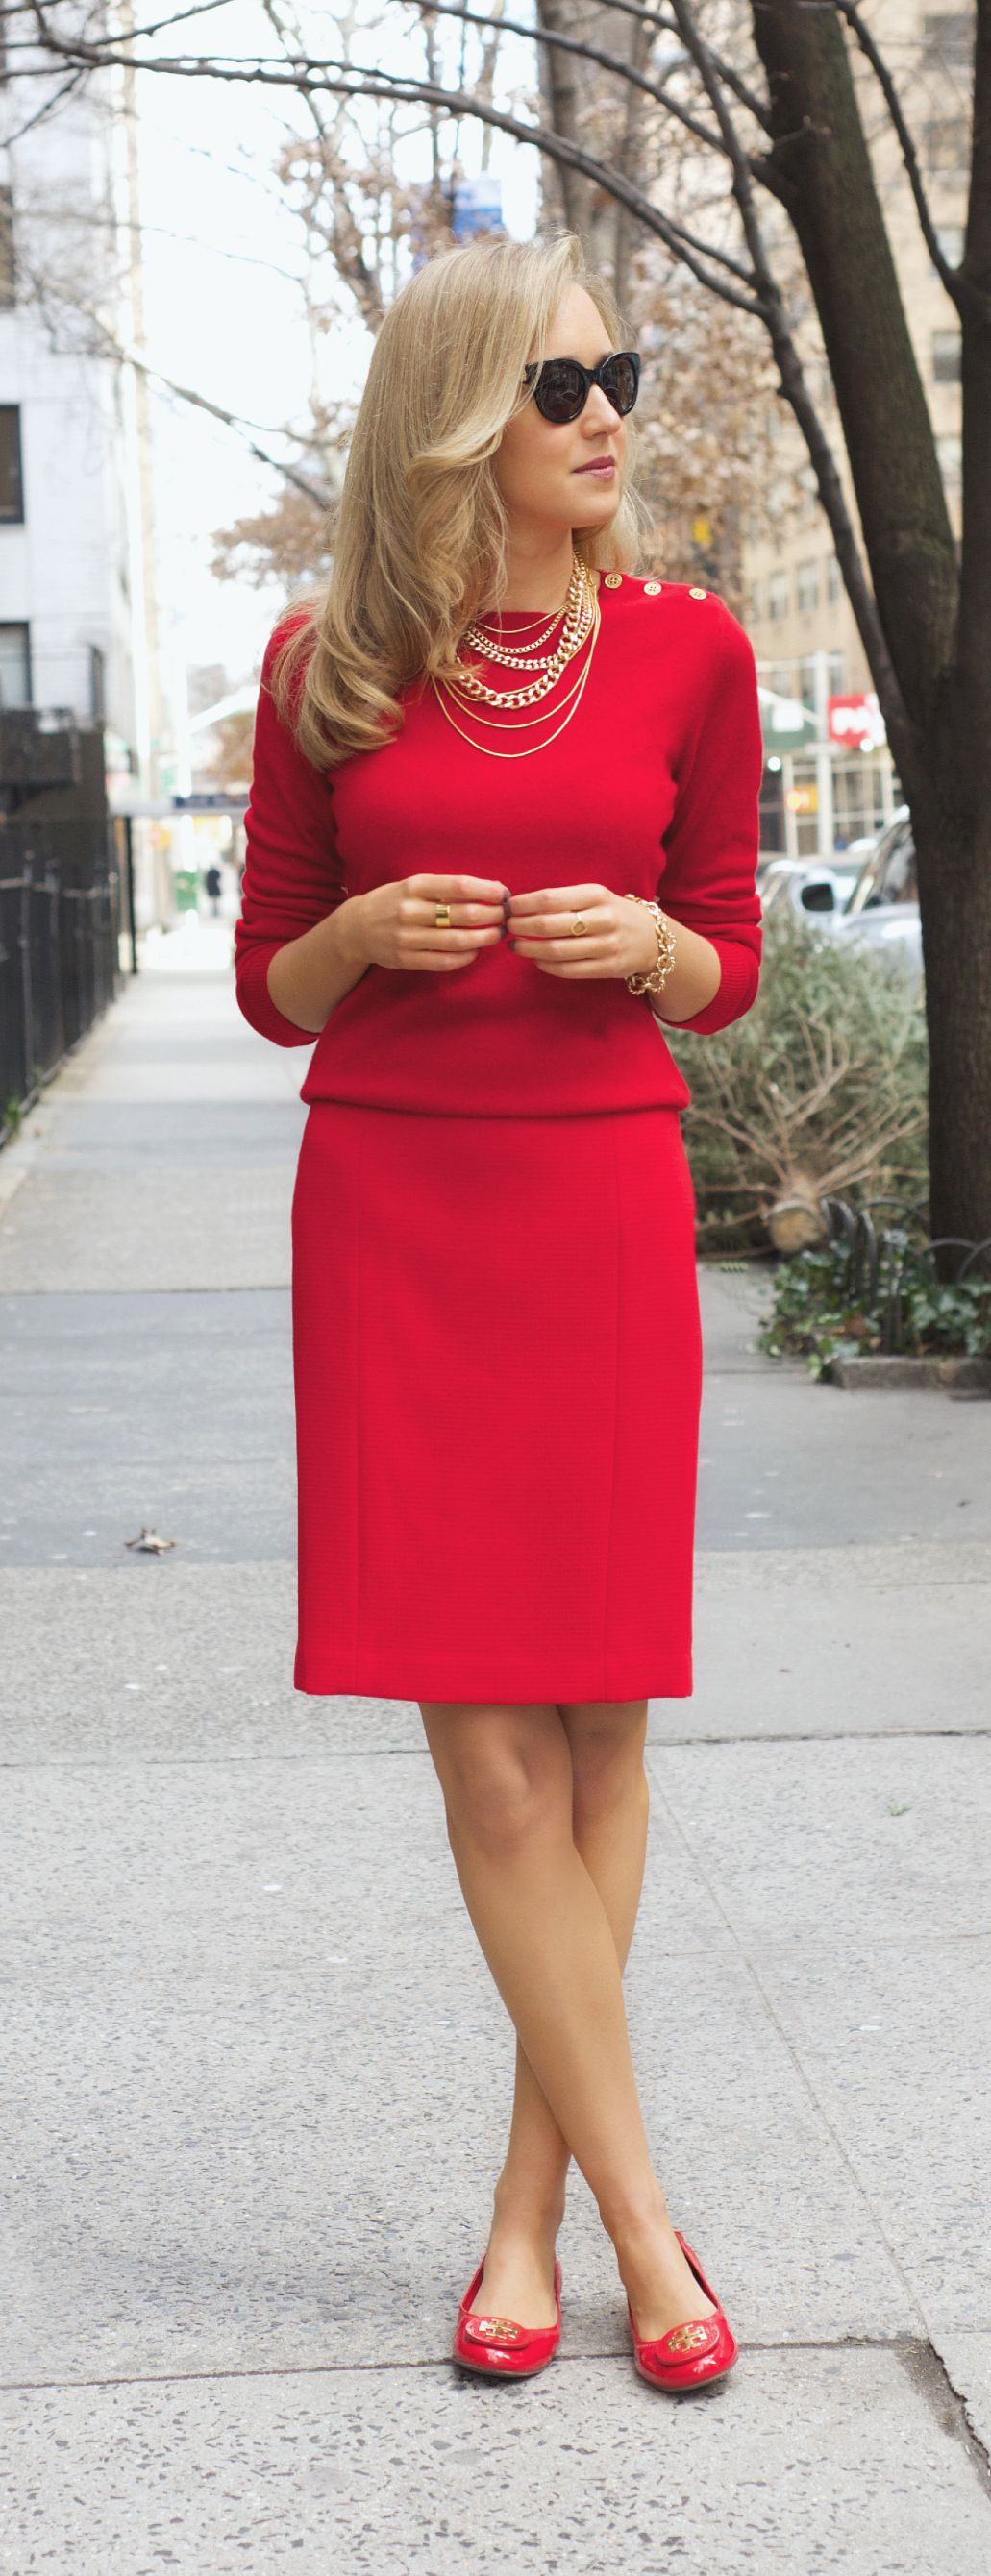 The Classy Cubicle: Seeing Red | Workplace fashion, Style ...